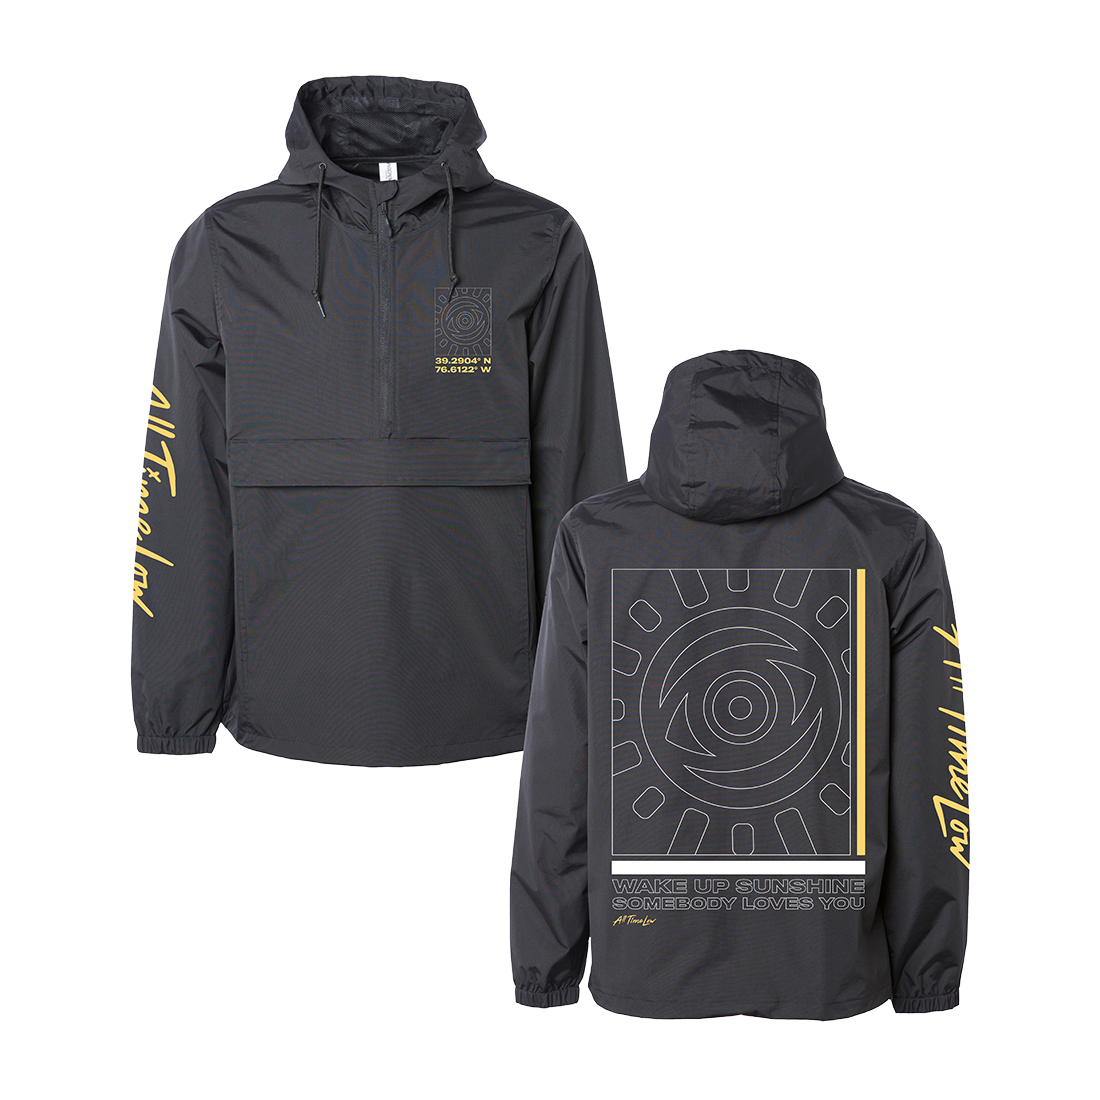 OUTLINE SUNSHINE WINDBREAKER